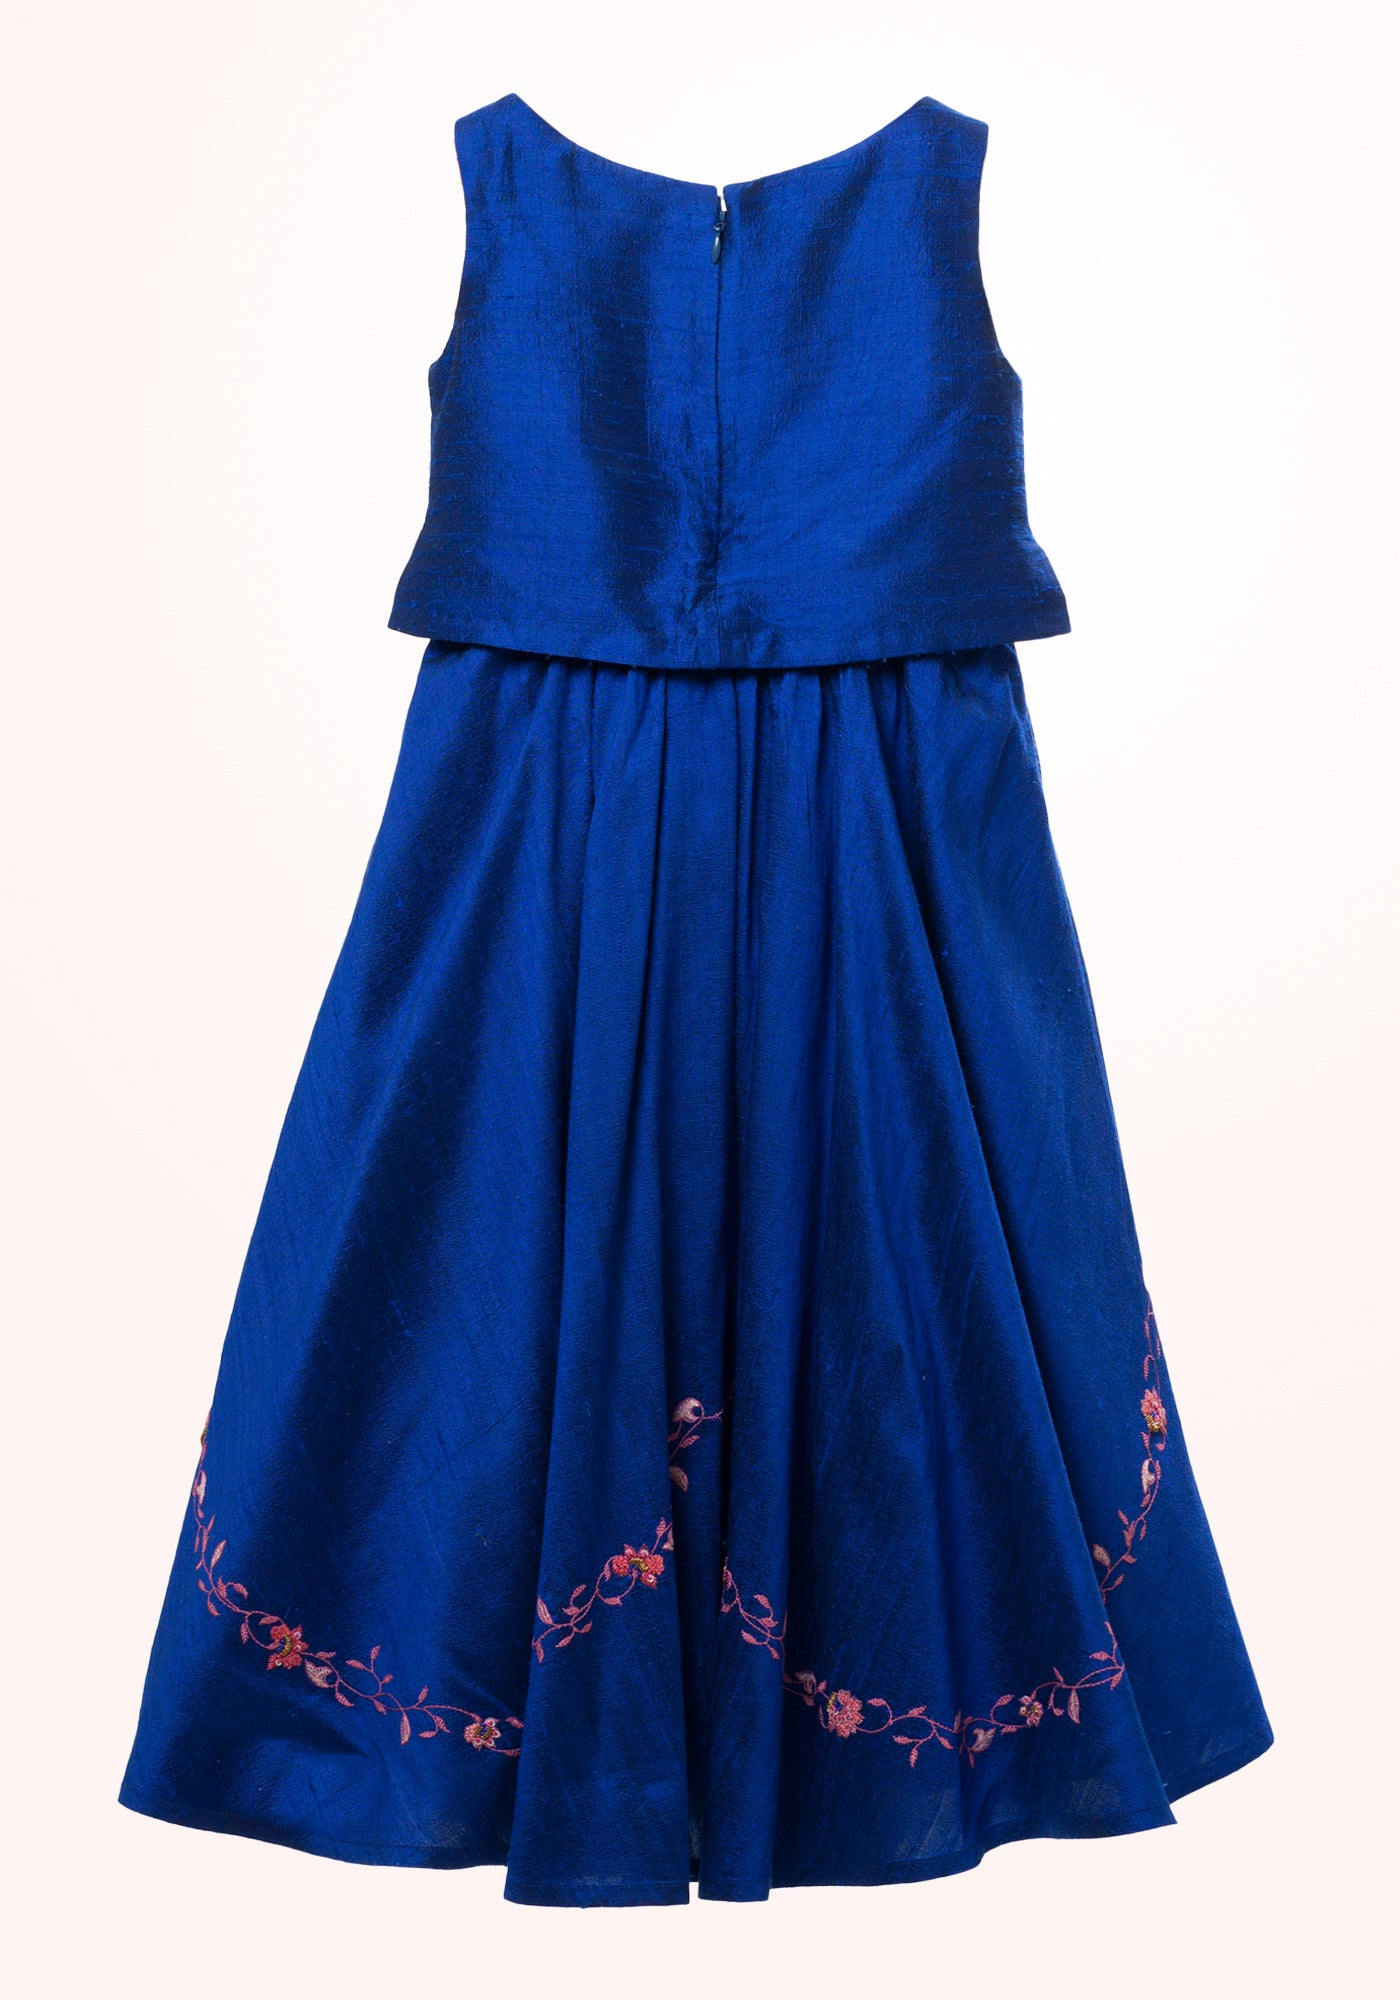 Royal Blue Girls Gown in Embroidered Silk - MINC ecofashion